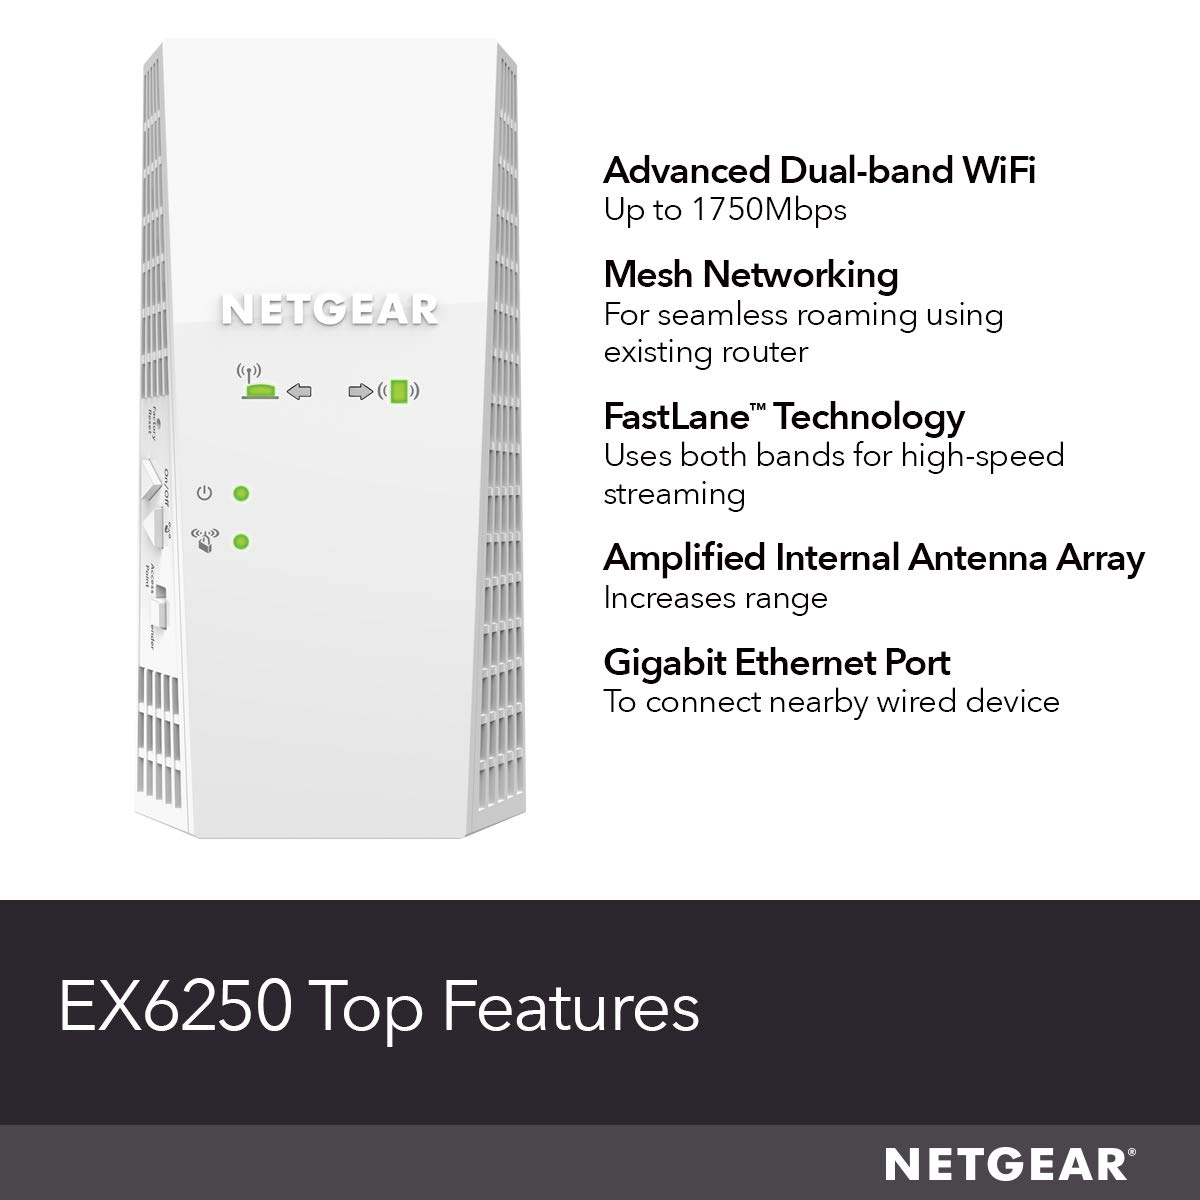 Coverage up to 1500 sq.ft and 25 devices with AC1750 Dual Band Wireless Signal Booster /& Repeater NETGEAR Wi-Fi Mesh Range Extender EX6250 up to 1750Mbps speed plus Mesh Smart Roaming